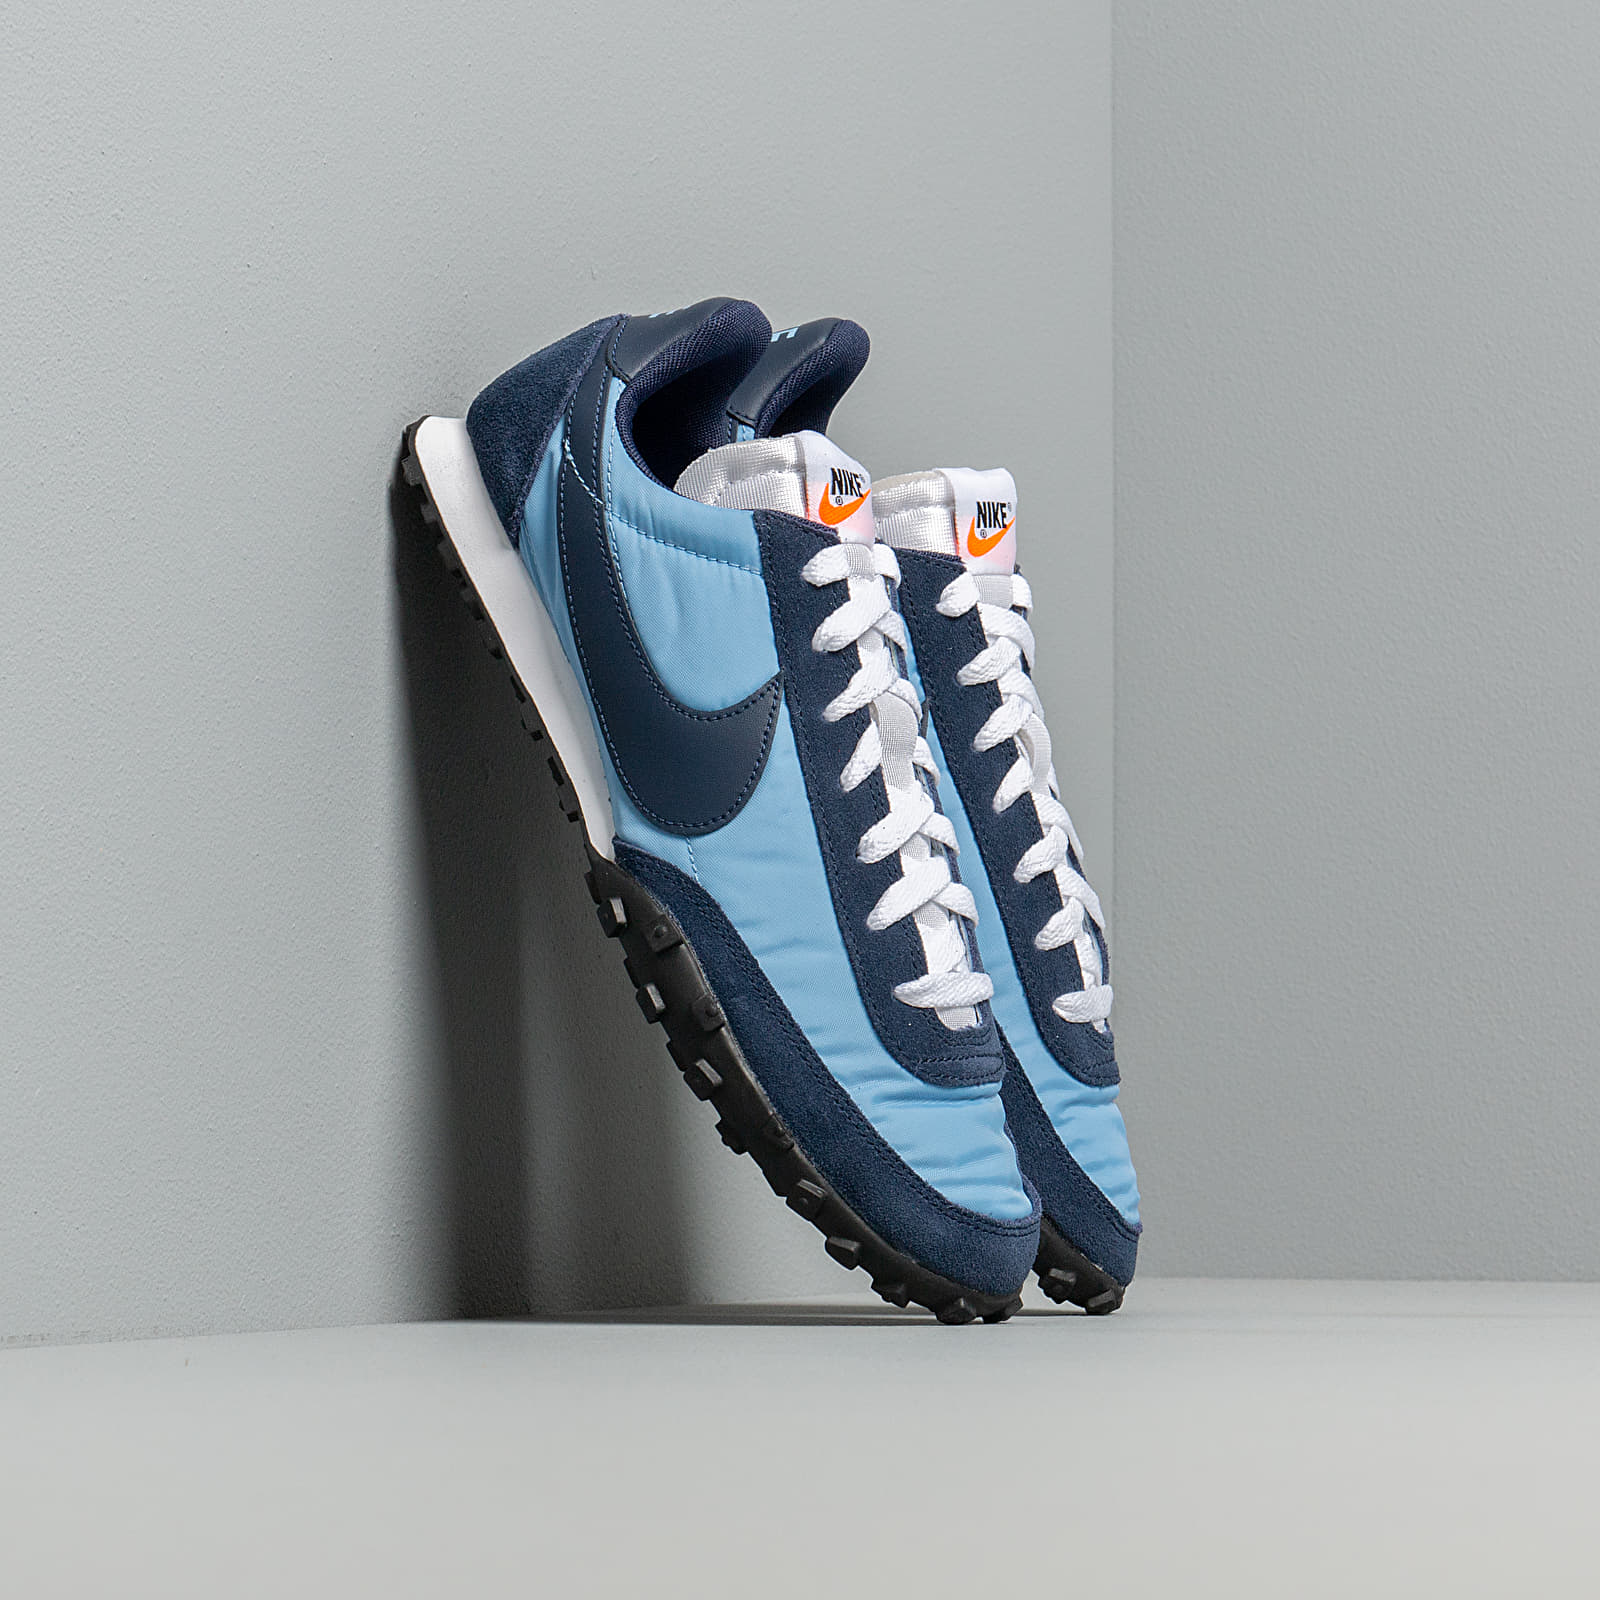 945 Confirmación fondo  Men's shoes Nike Waffle Racer Light Blue/ Midnight Navy-Midnight Navy |  Footshop